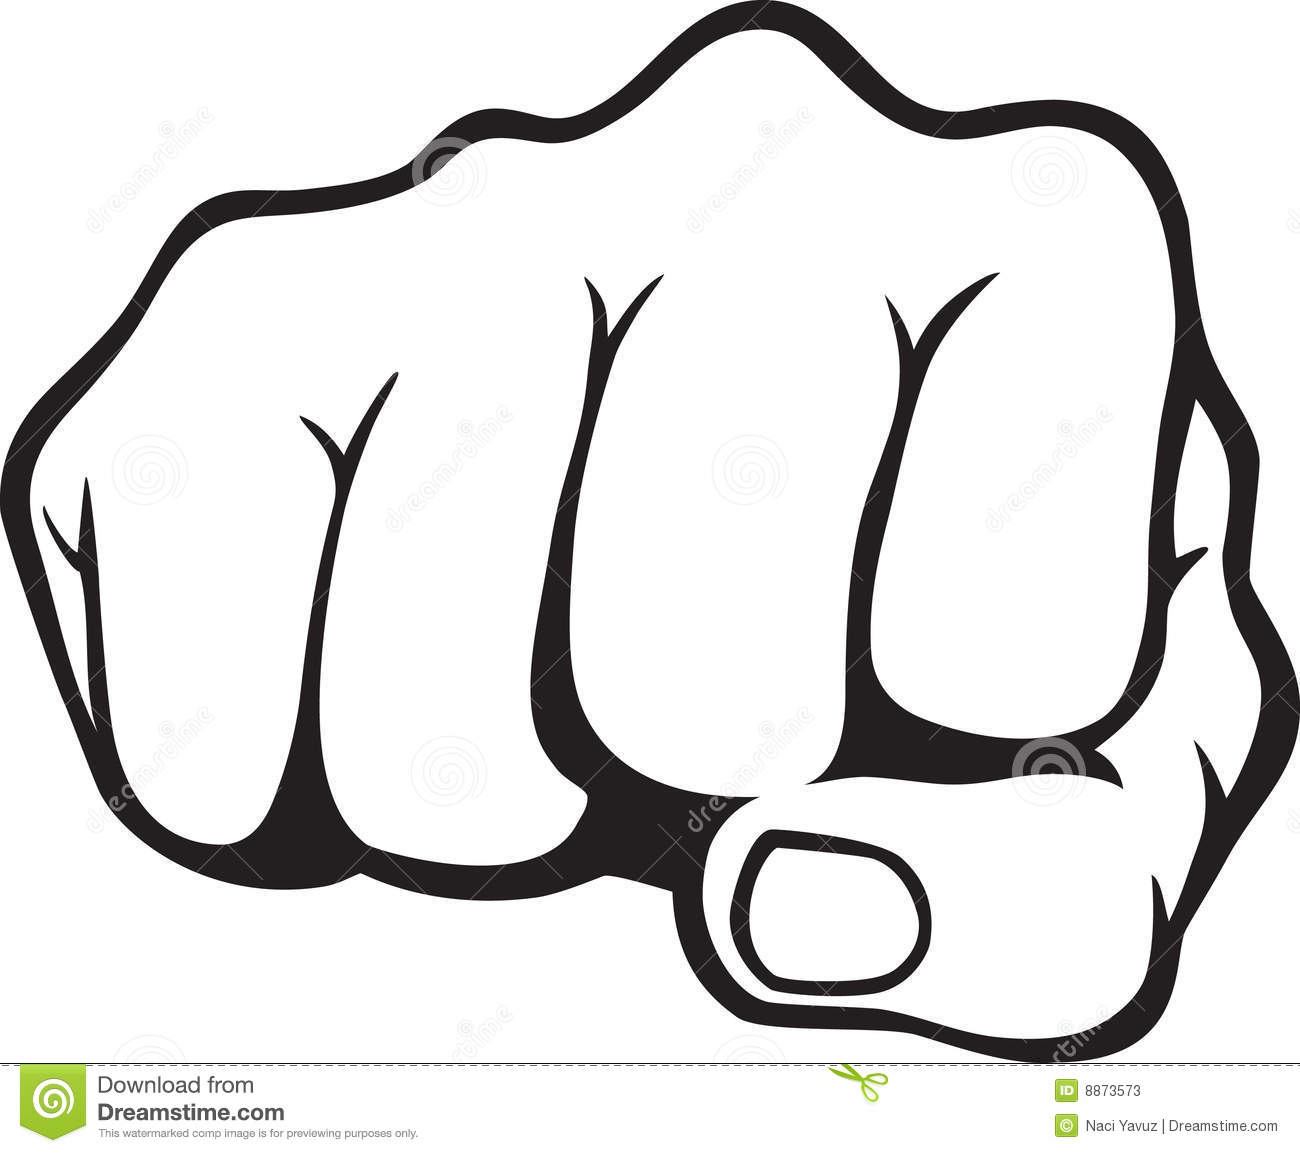 Fist stock vector. Illustration of fist, punch, aggressive - 8873573